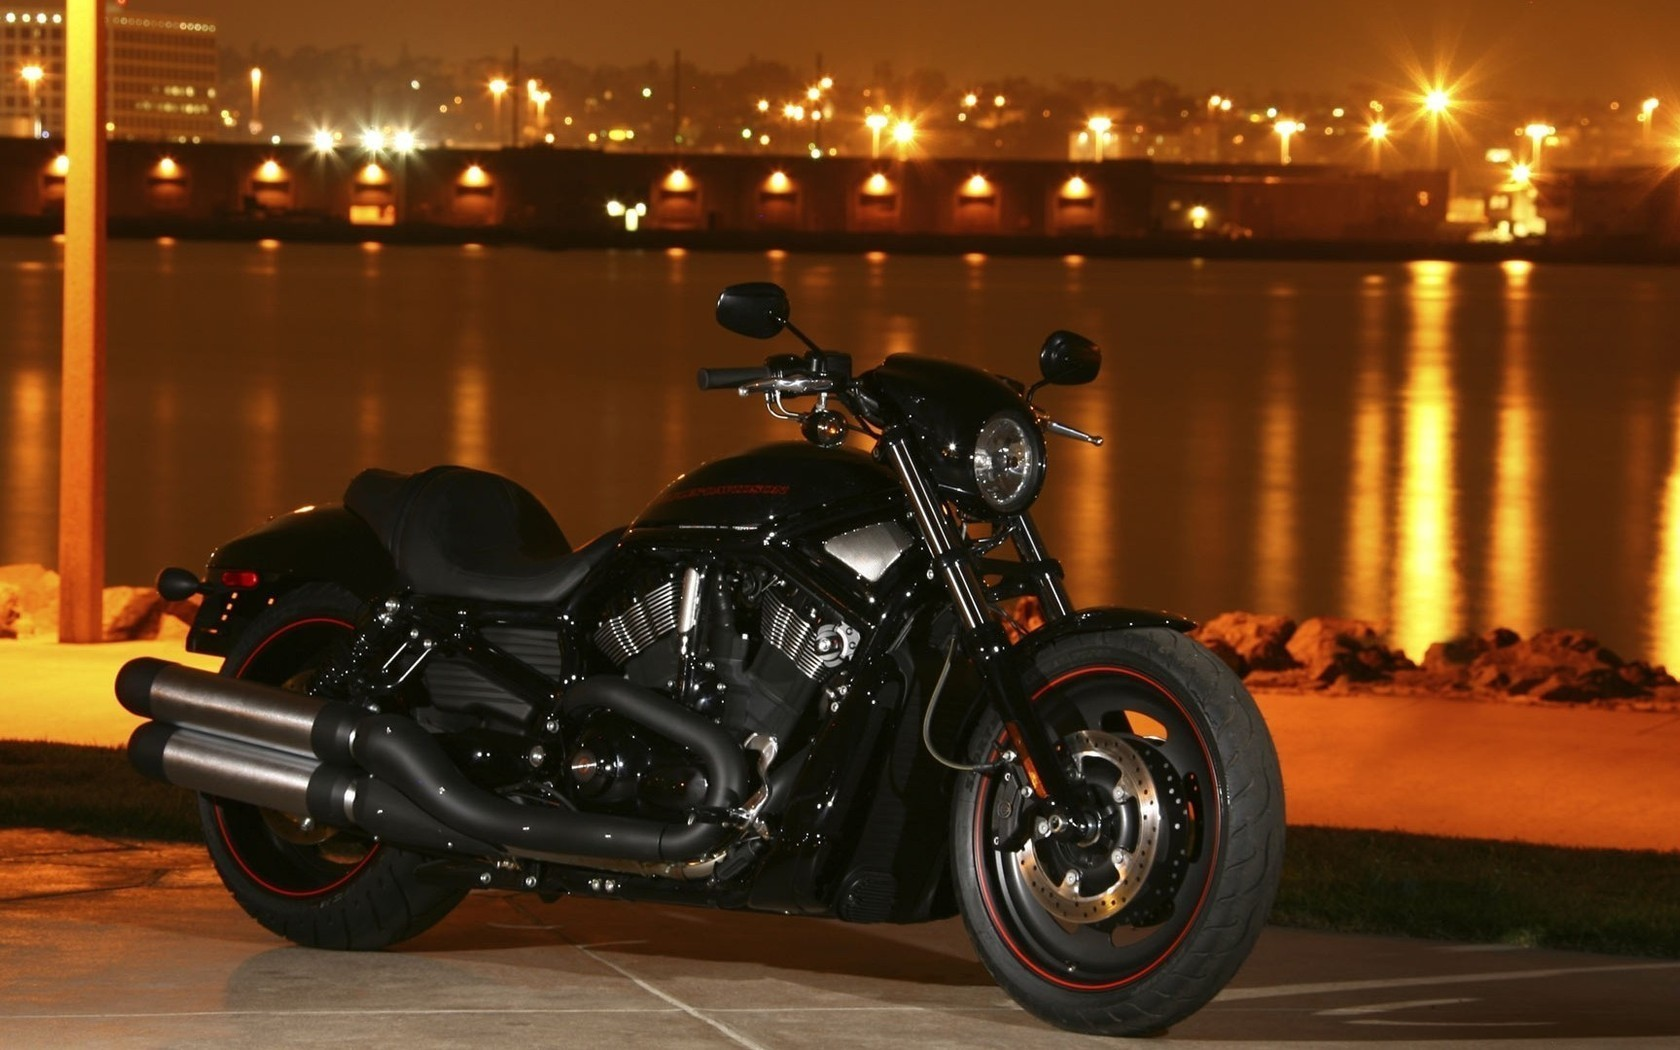 engines custom bike wallpaper | allwallpaper.in #9200 | pc | en